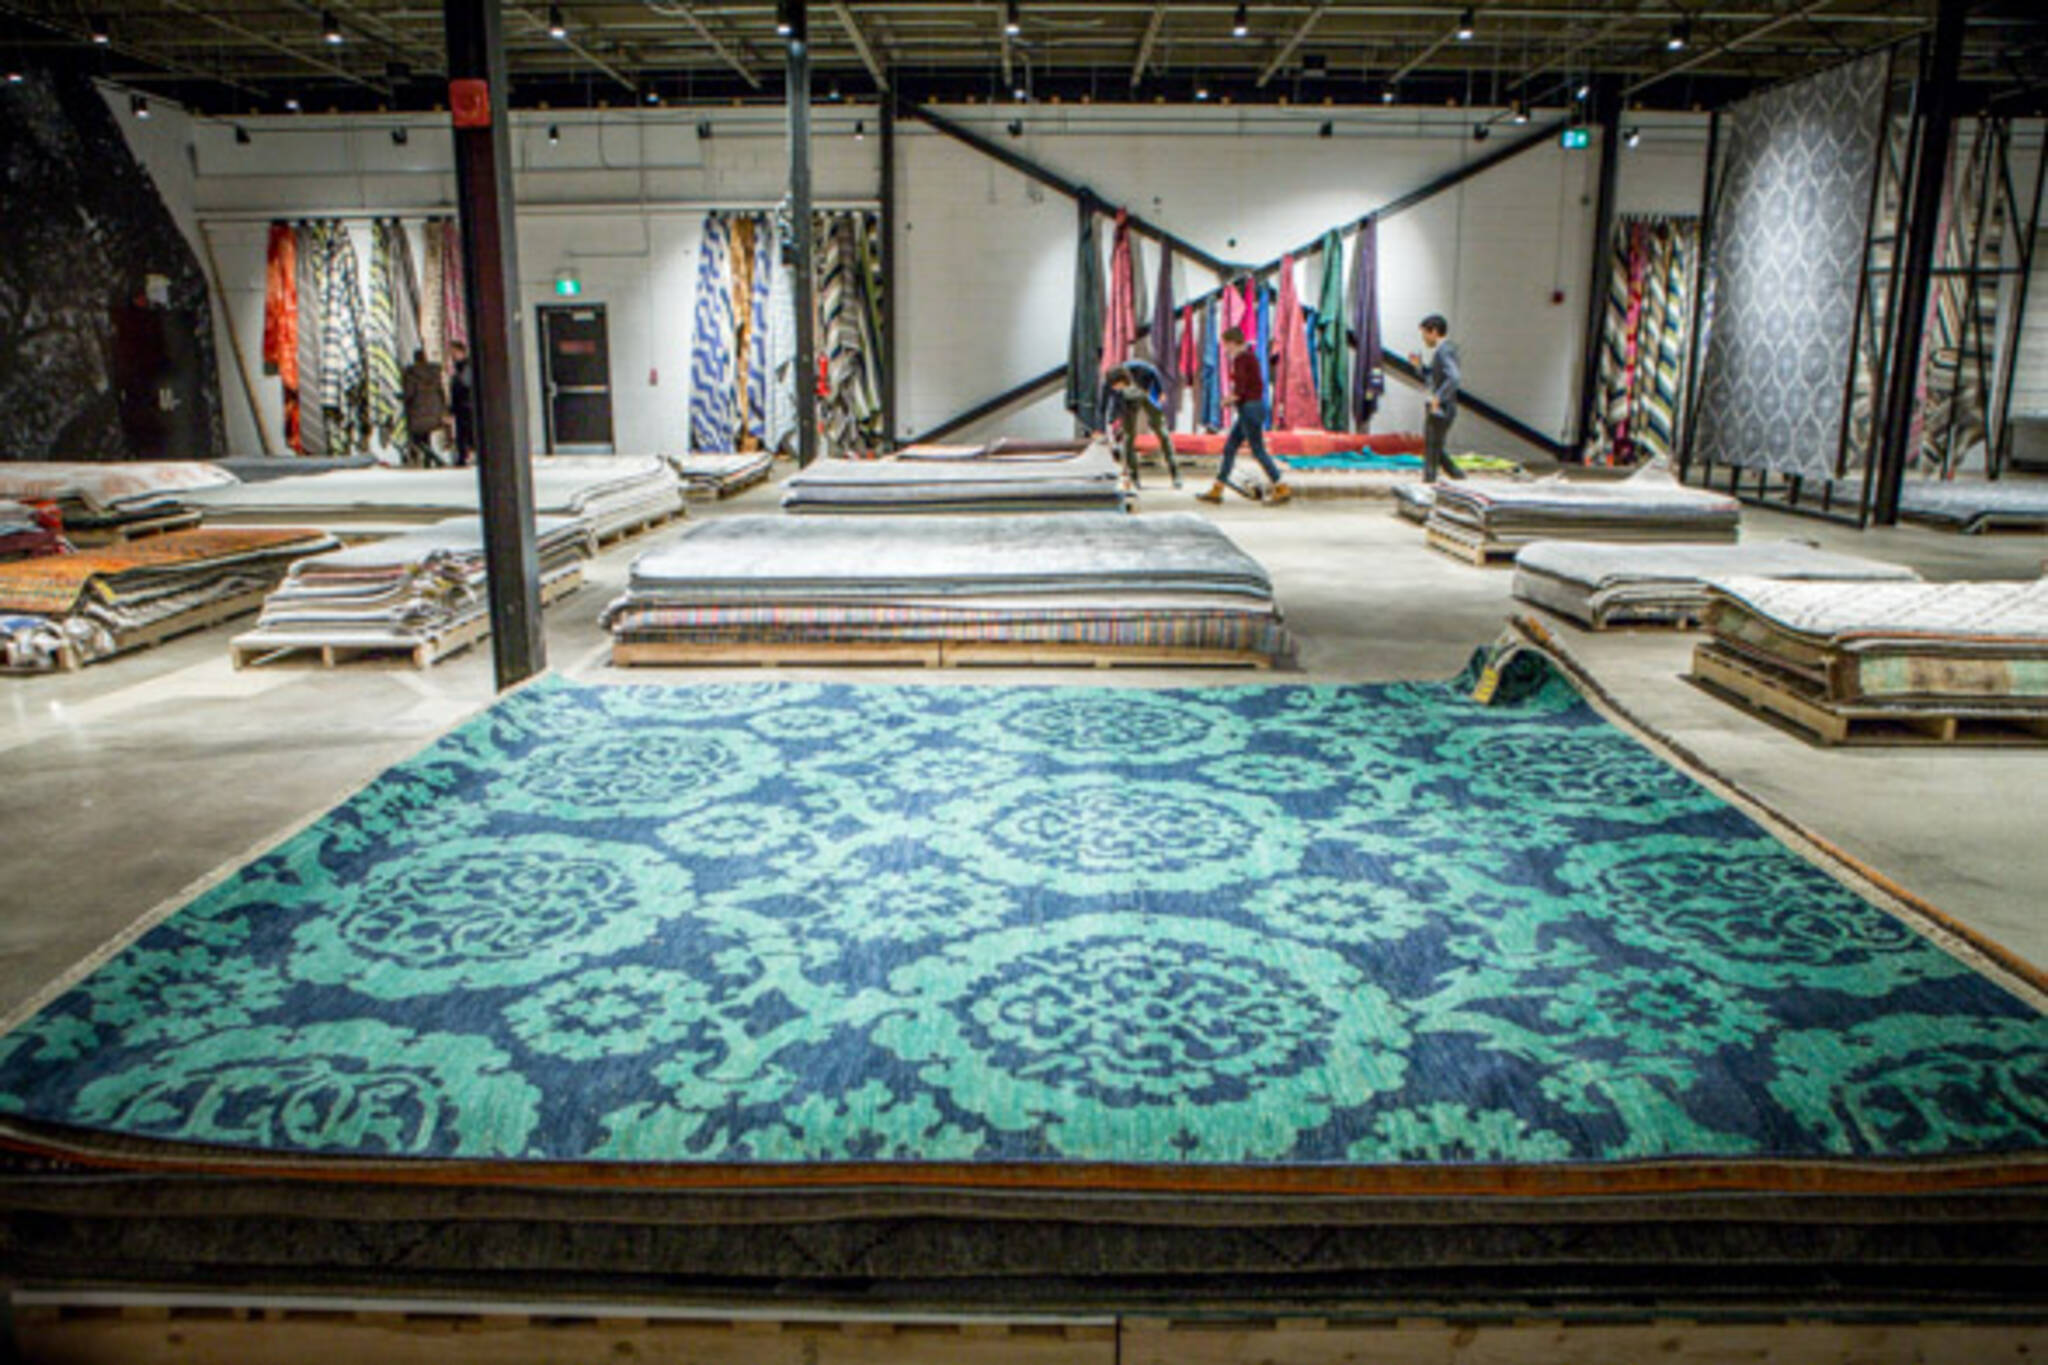 Elte carpets and rugs meze blog for El furniture warehouse toronto menu